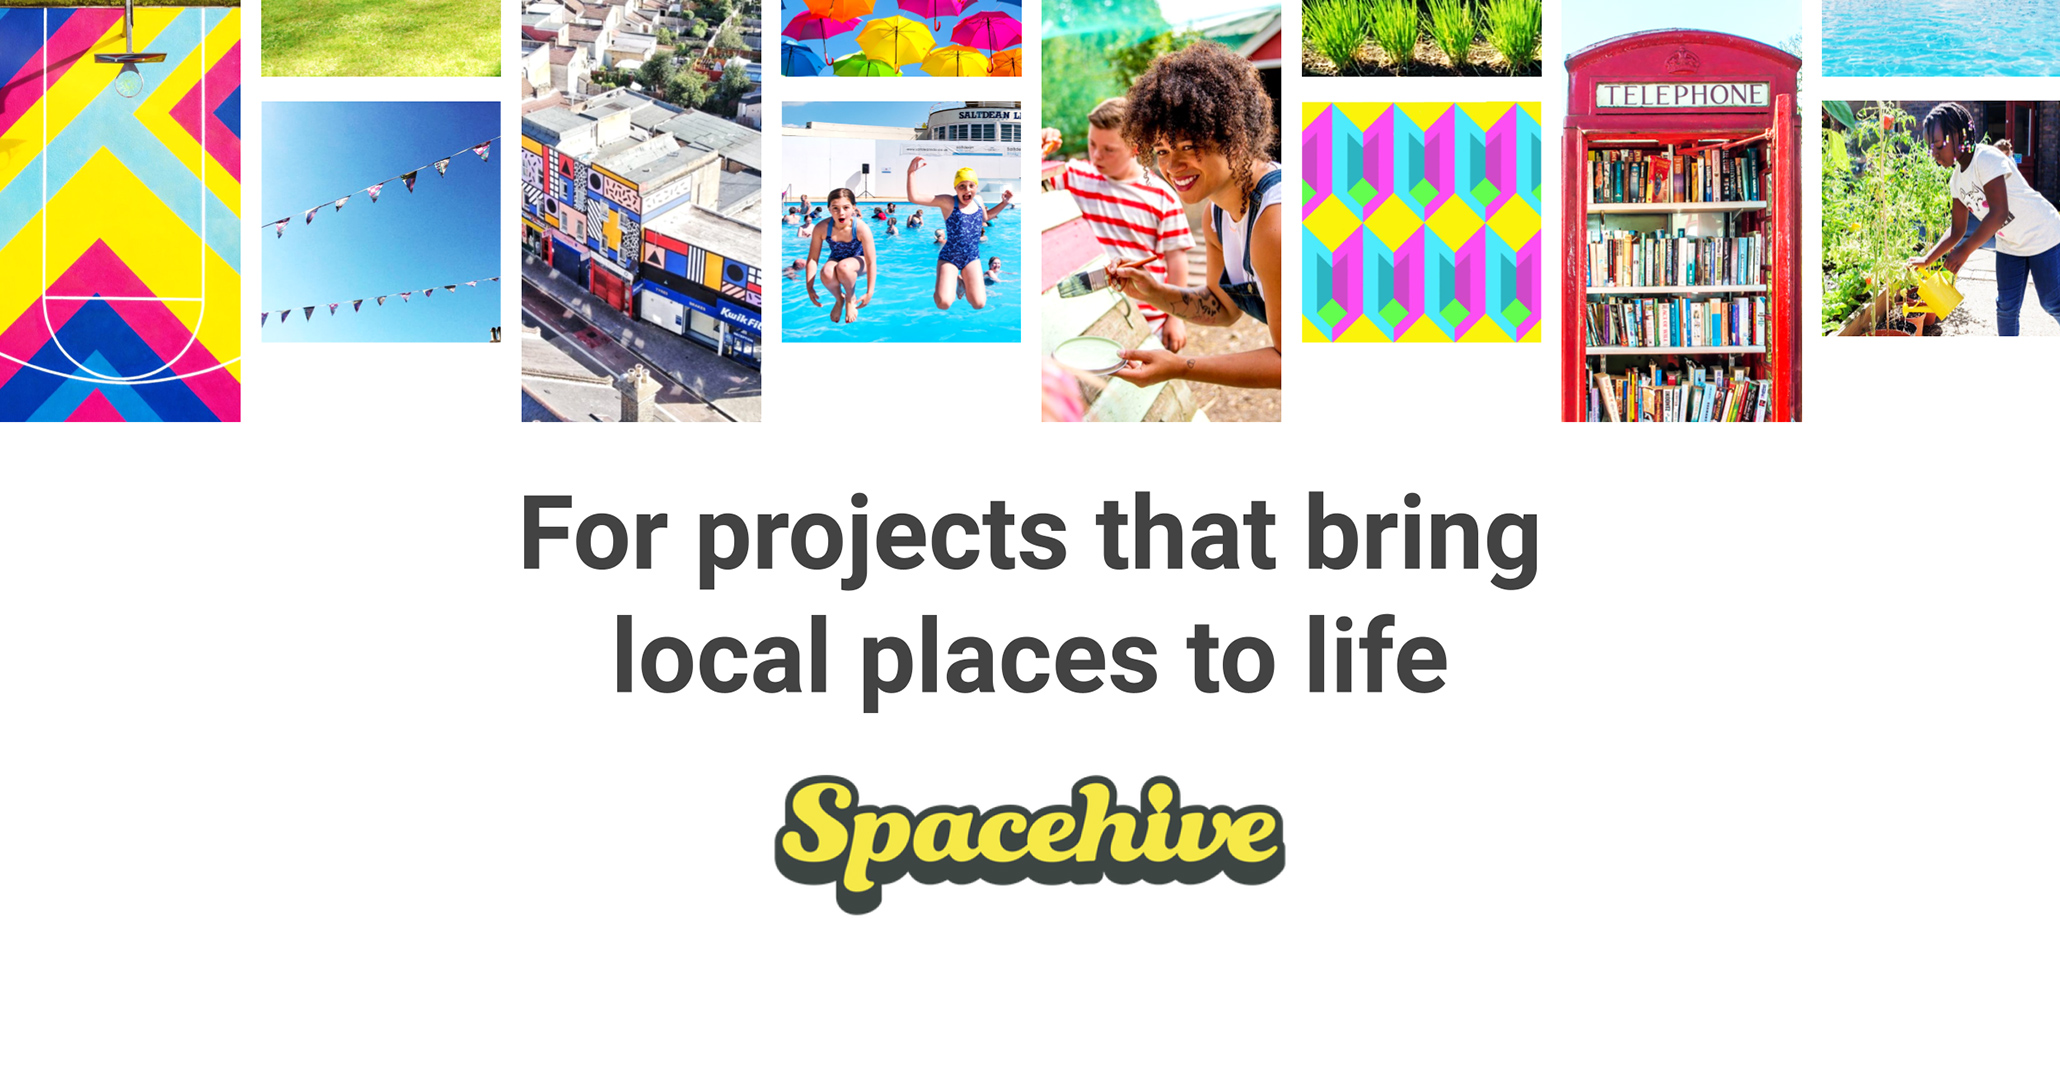 www.spacehive.com